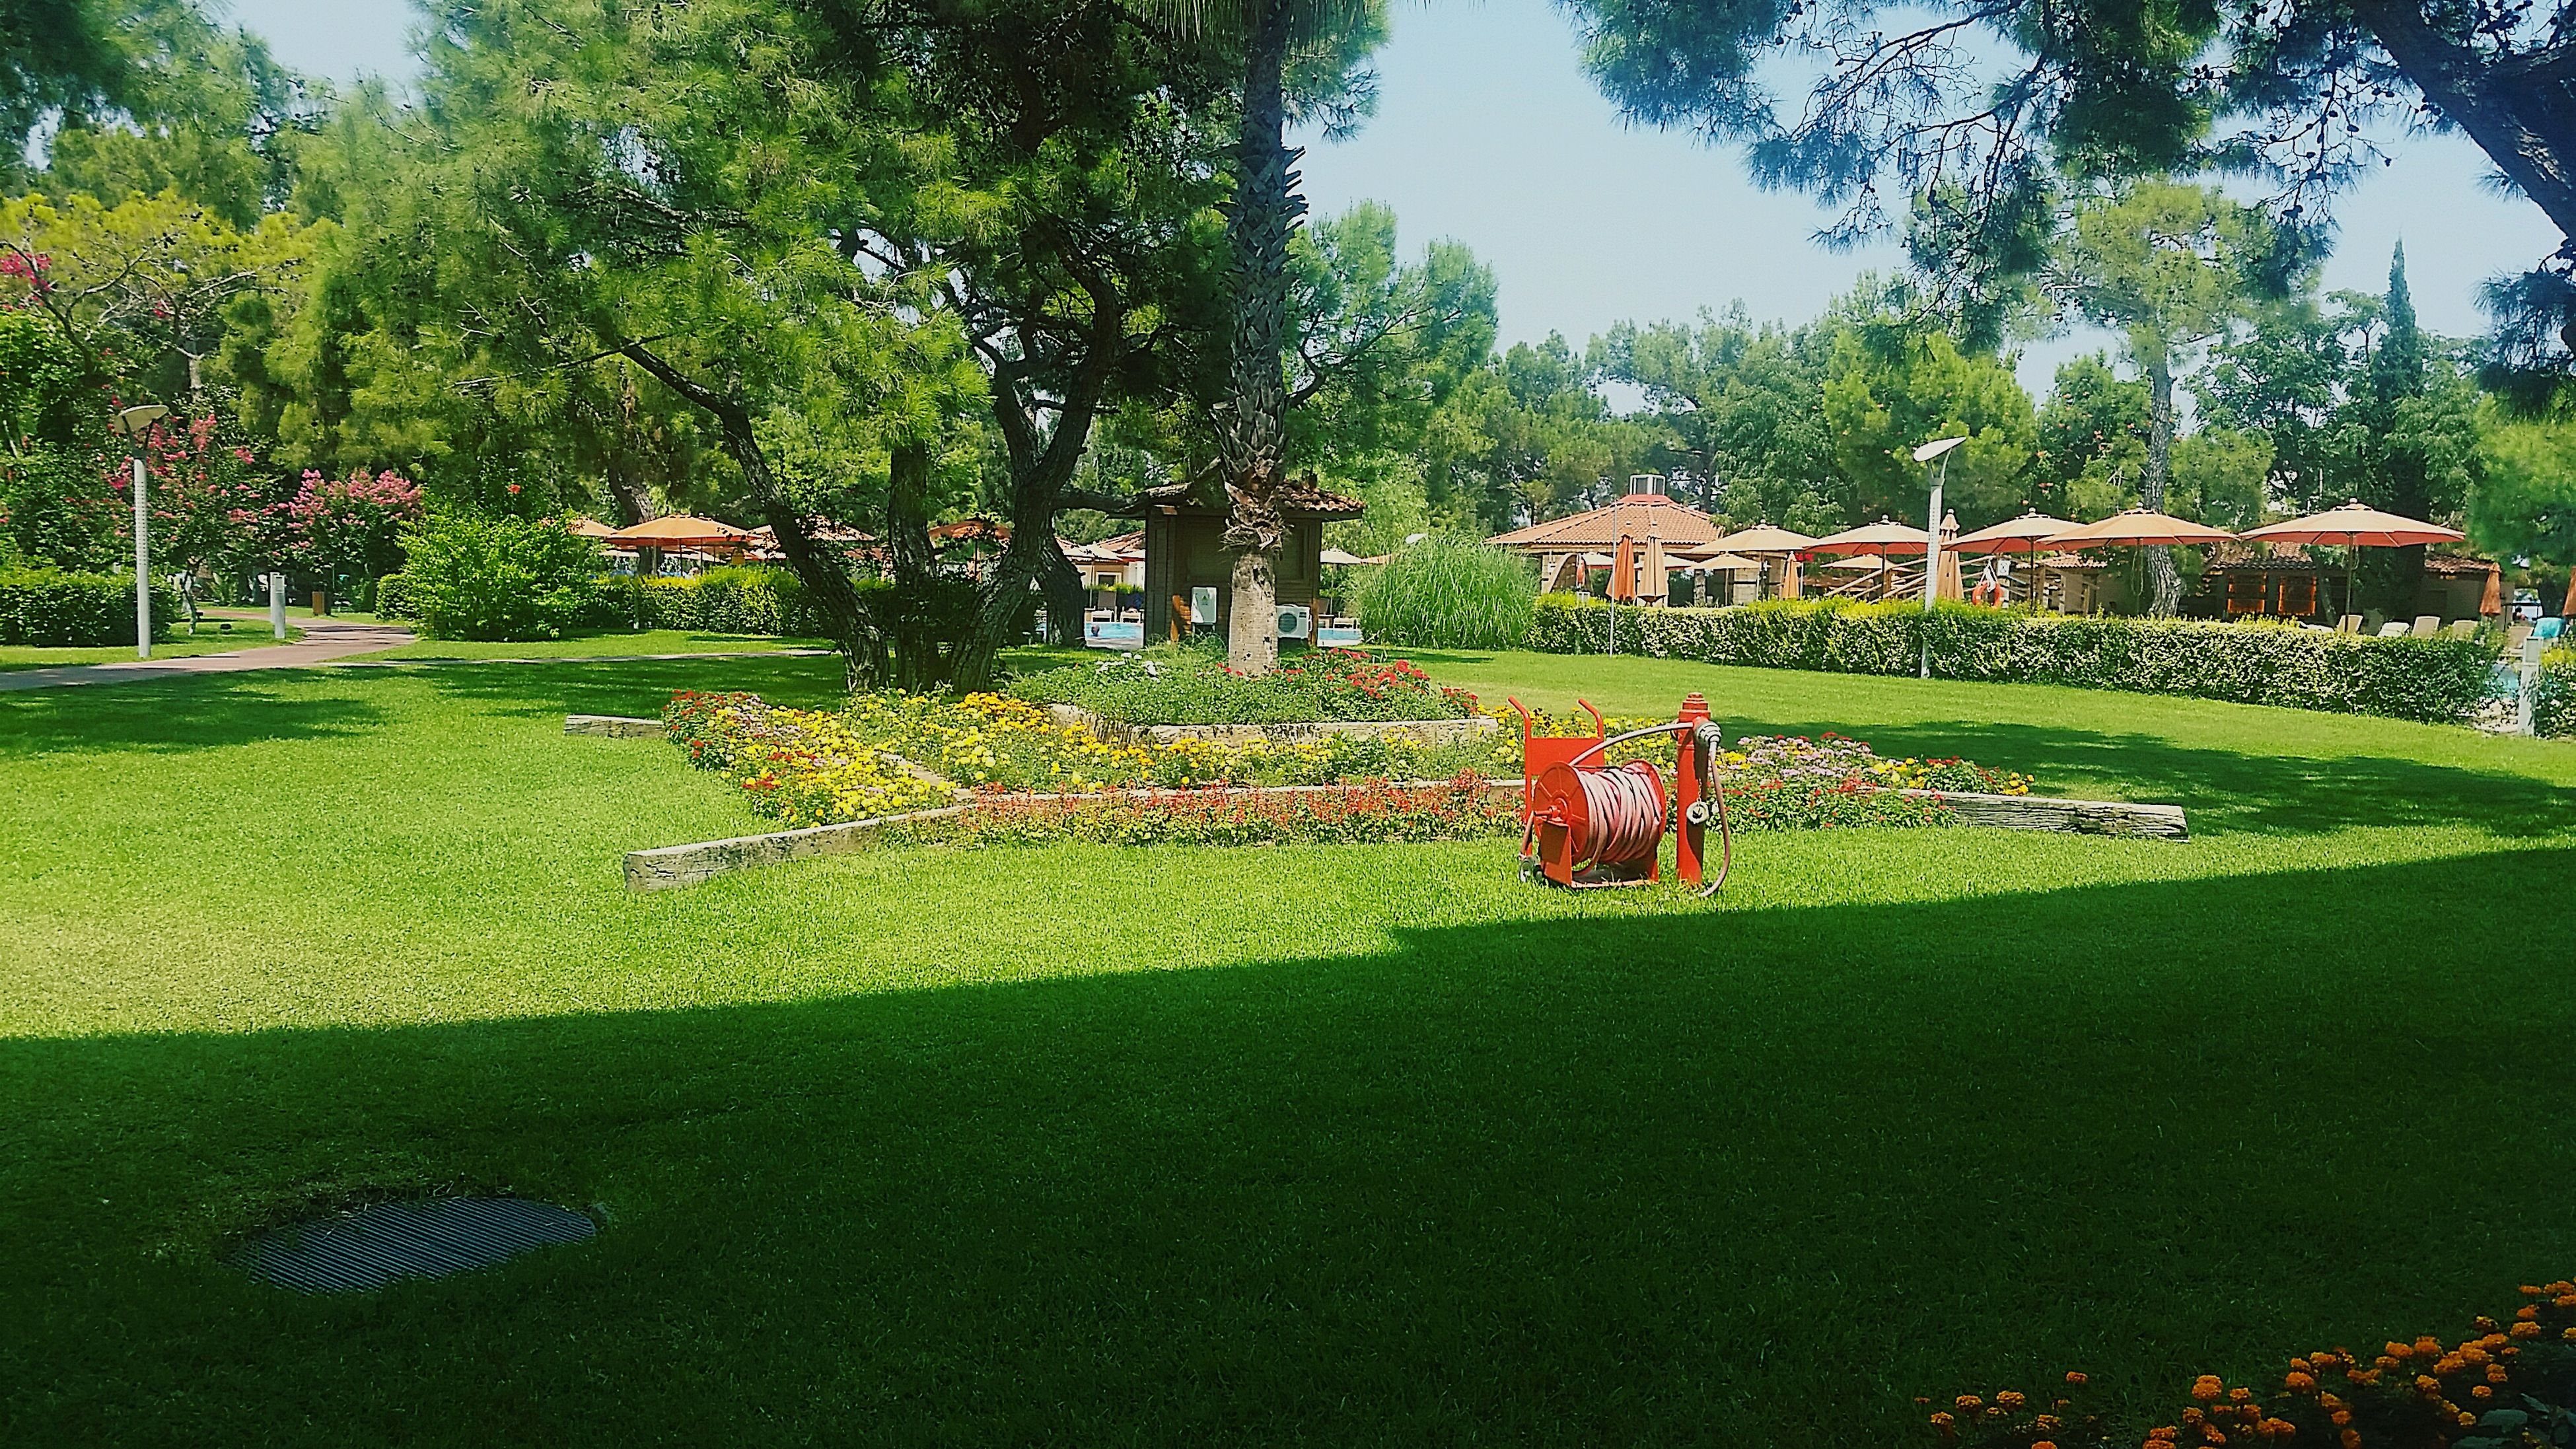 tree, grass, growth, green color, flower, park - man made space, green, day, plant, tranquility, nature, petal, fragility, formal garden, beauty in nature, lawn, tranquil scene, freshness, outdoors, solitude, garden, growing, red, remote